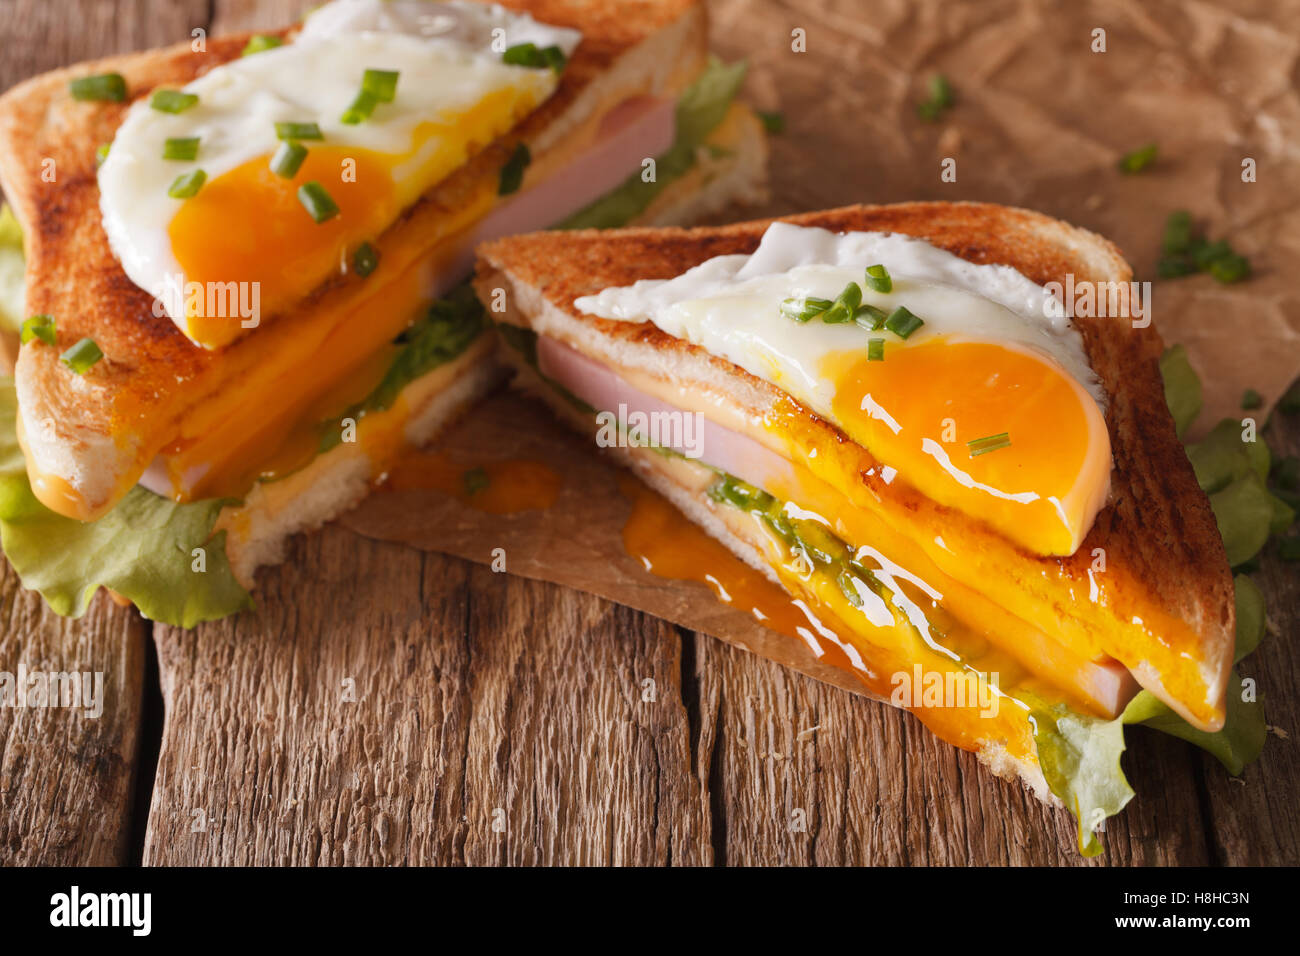 Cut sandwich with fried egg, ham and cheese close-up on the paper on the table. horizontal - Stock Image